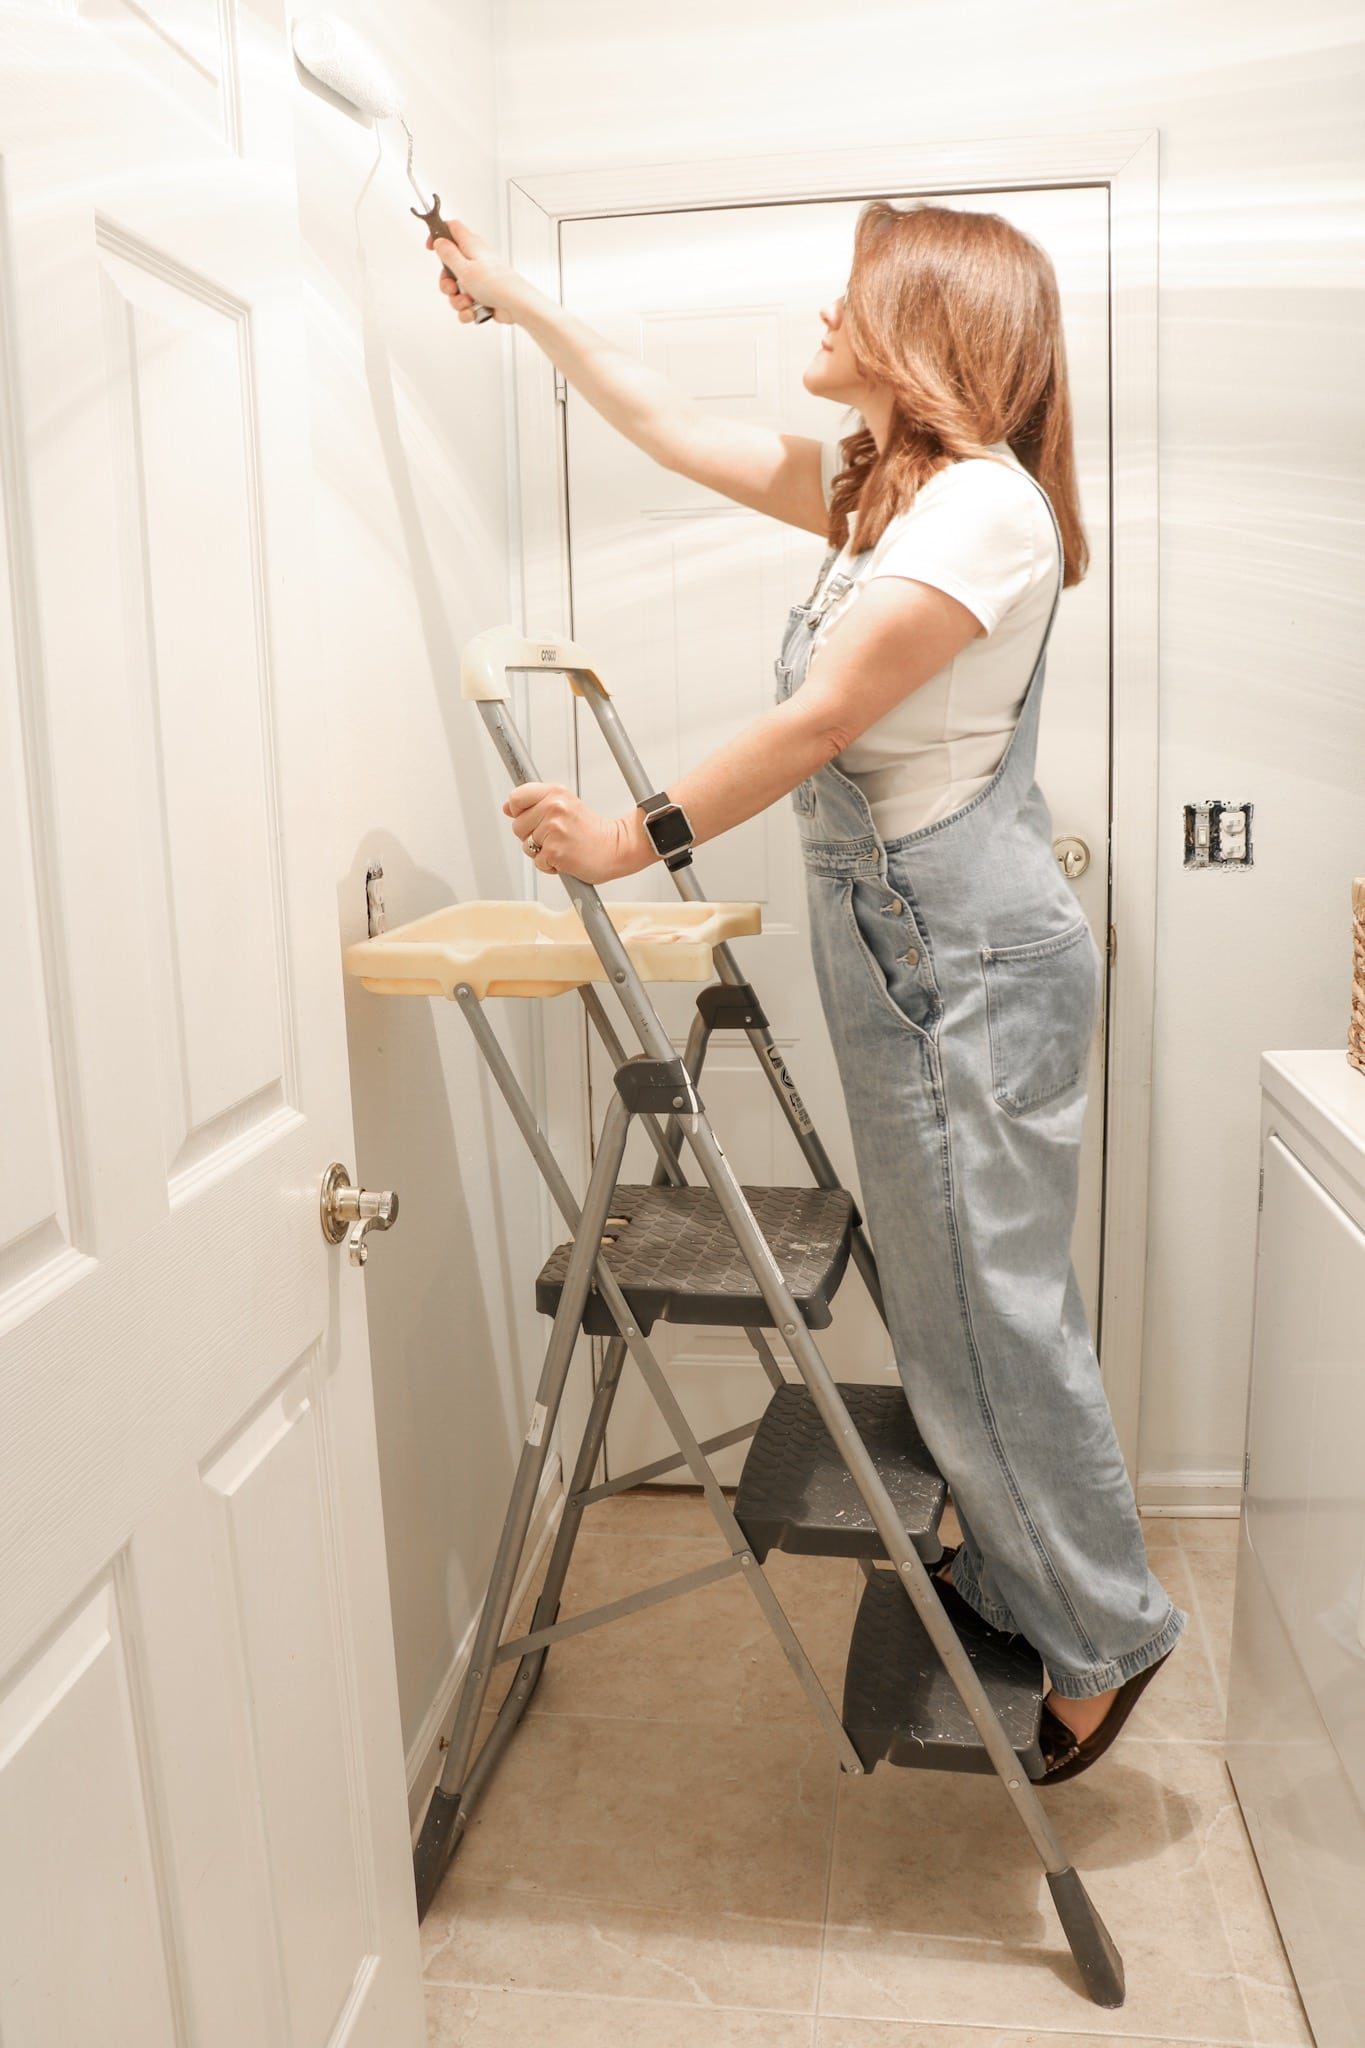 How to paint walls white with roller